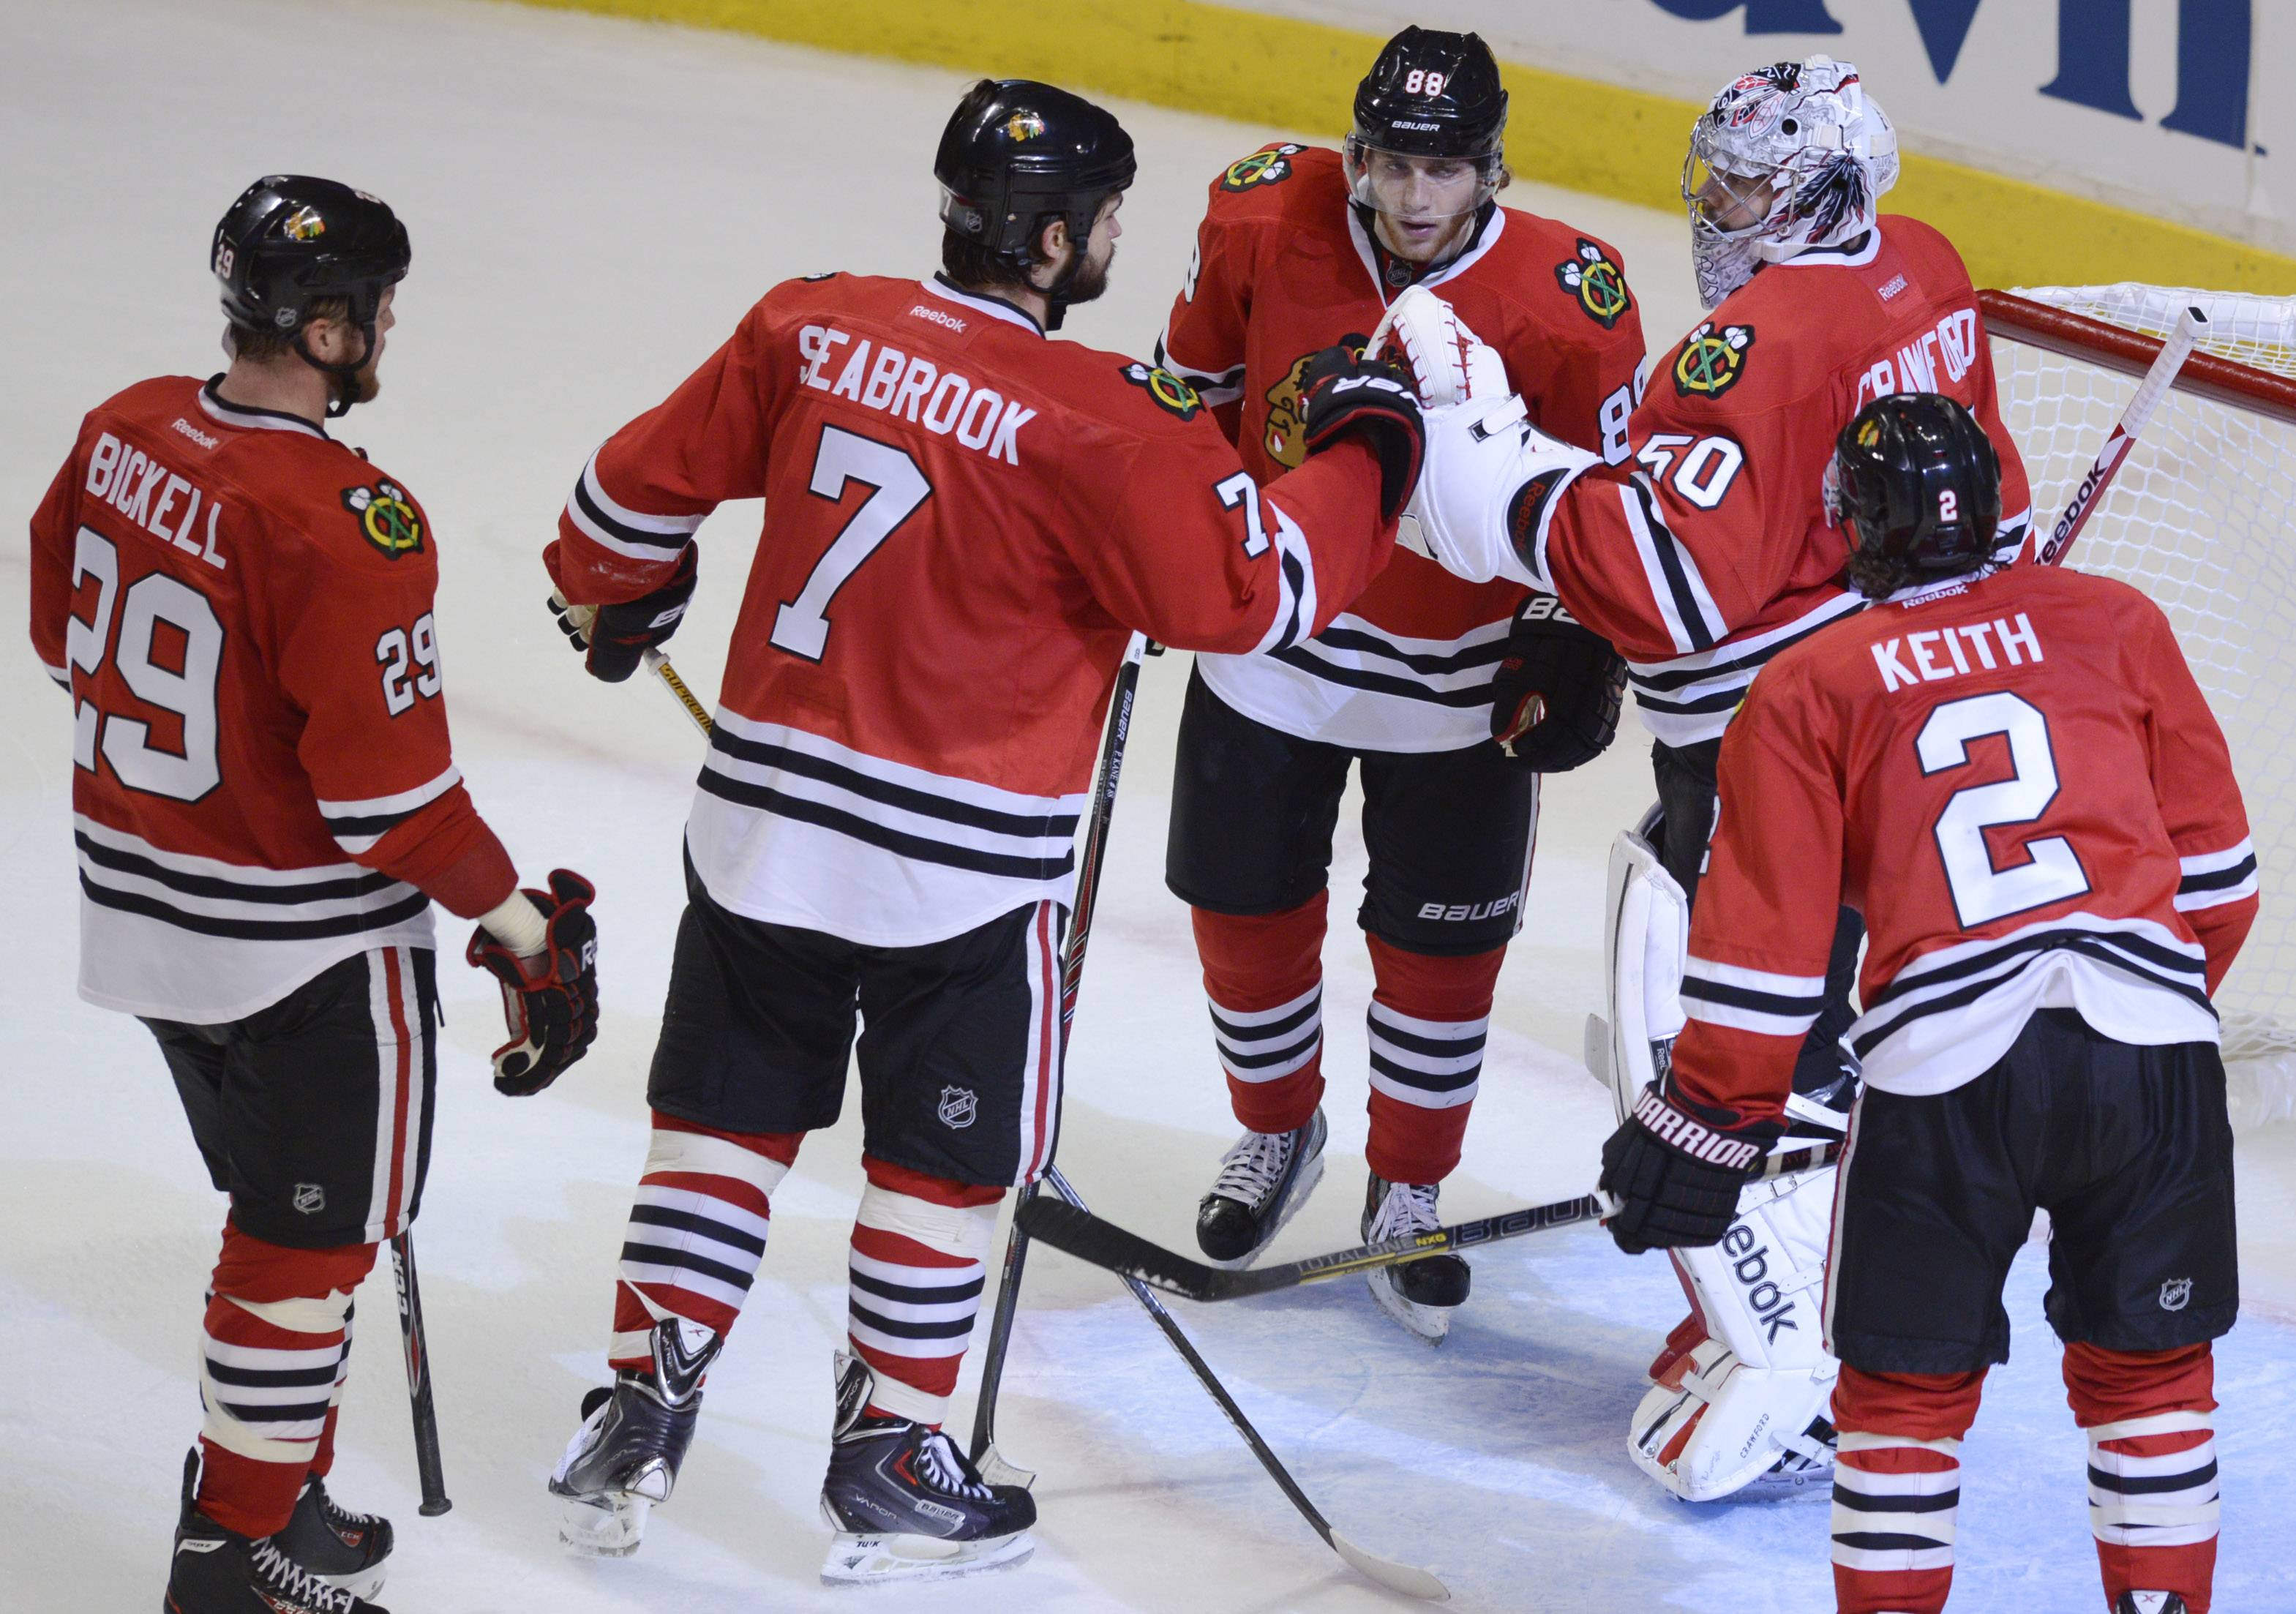 Blackhawks Bryan Bickell, from left, Brent Seabrook, Patrick Kane, goalie Corey Crawford and Duncan Keith celebrate their win Sunday over the Los Angeles Kings.